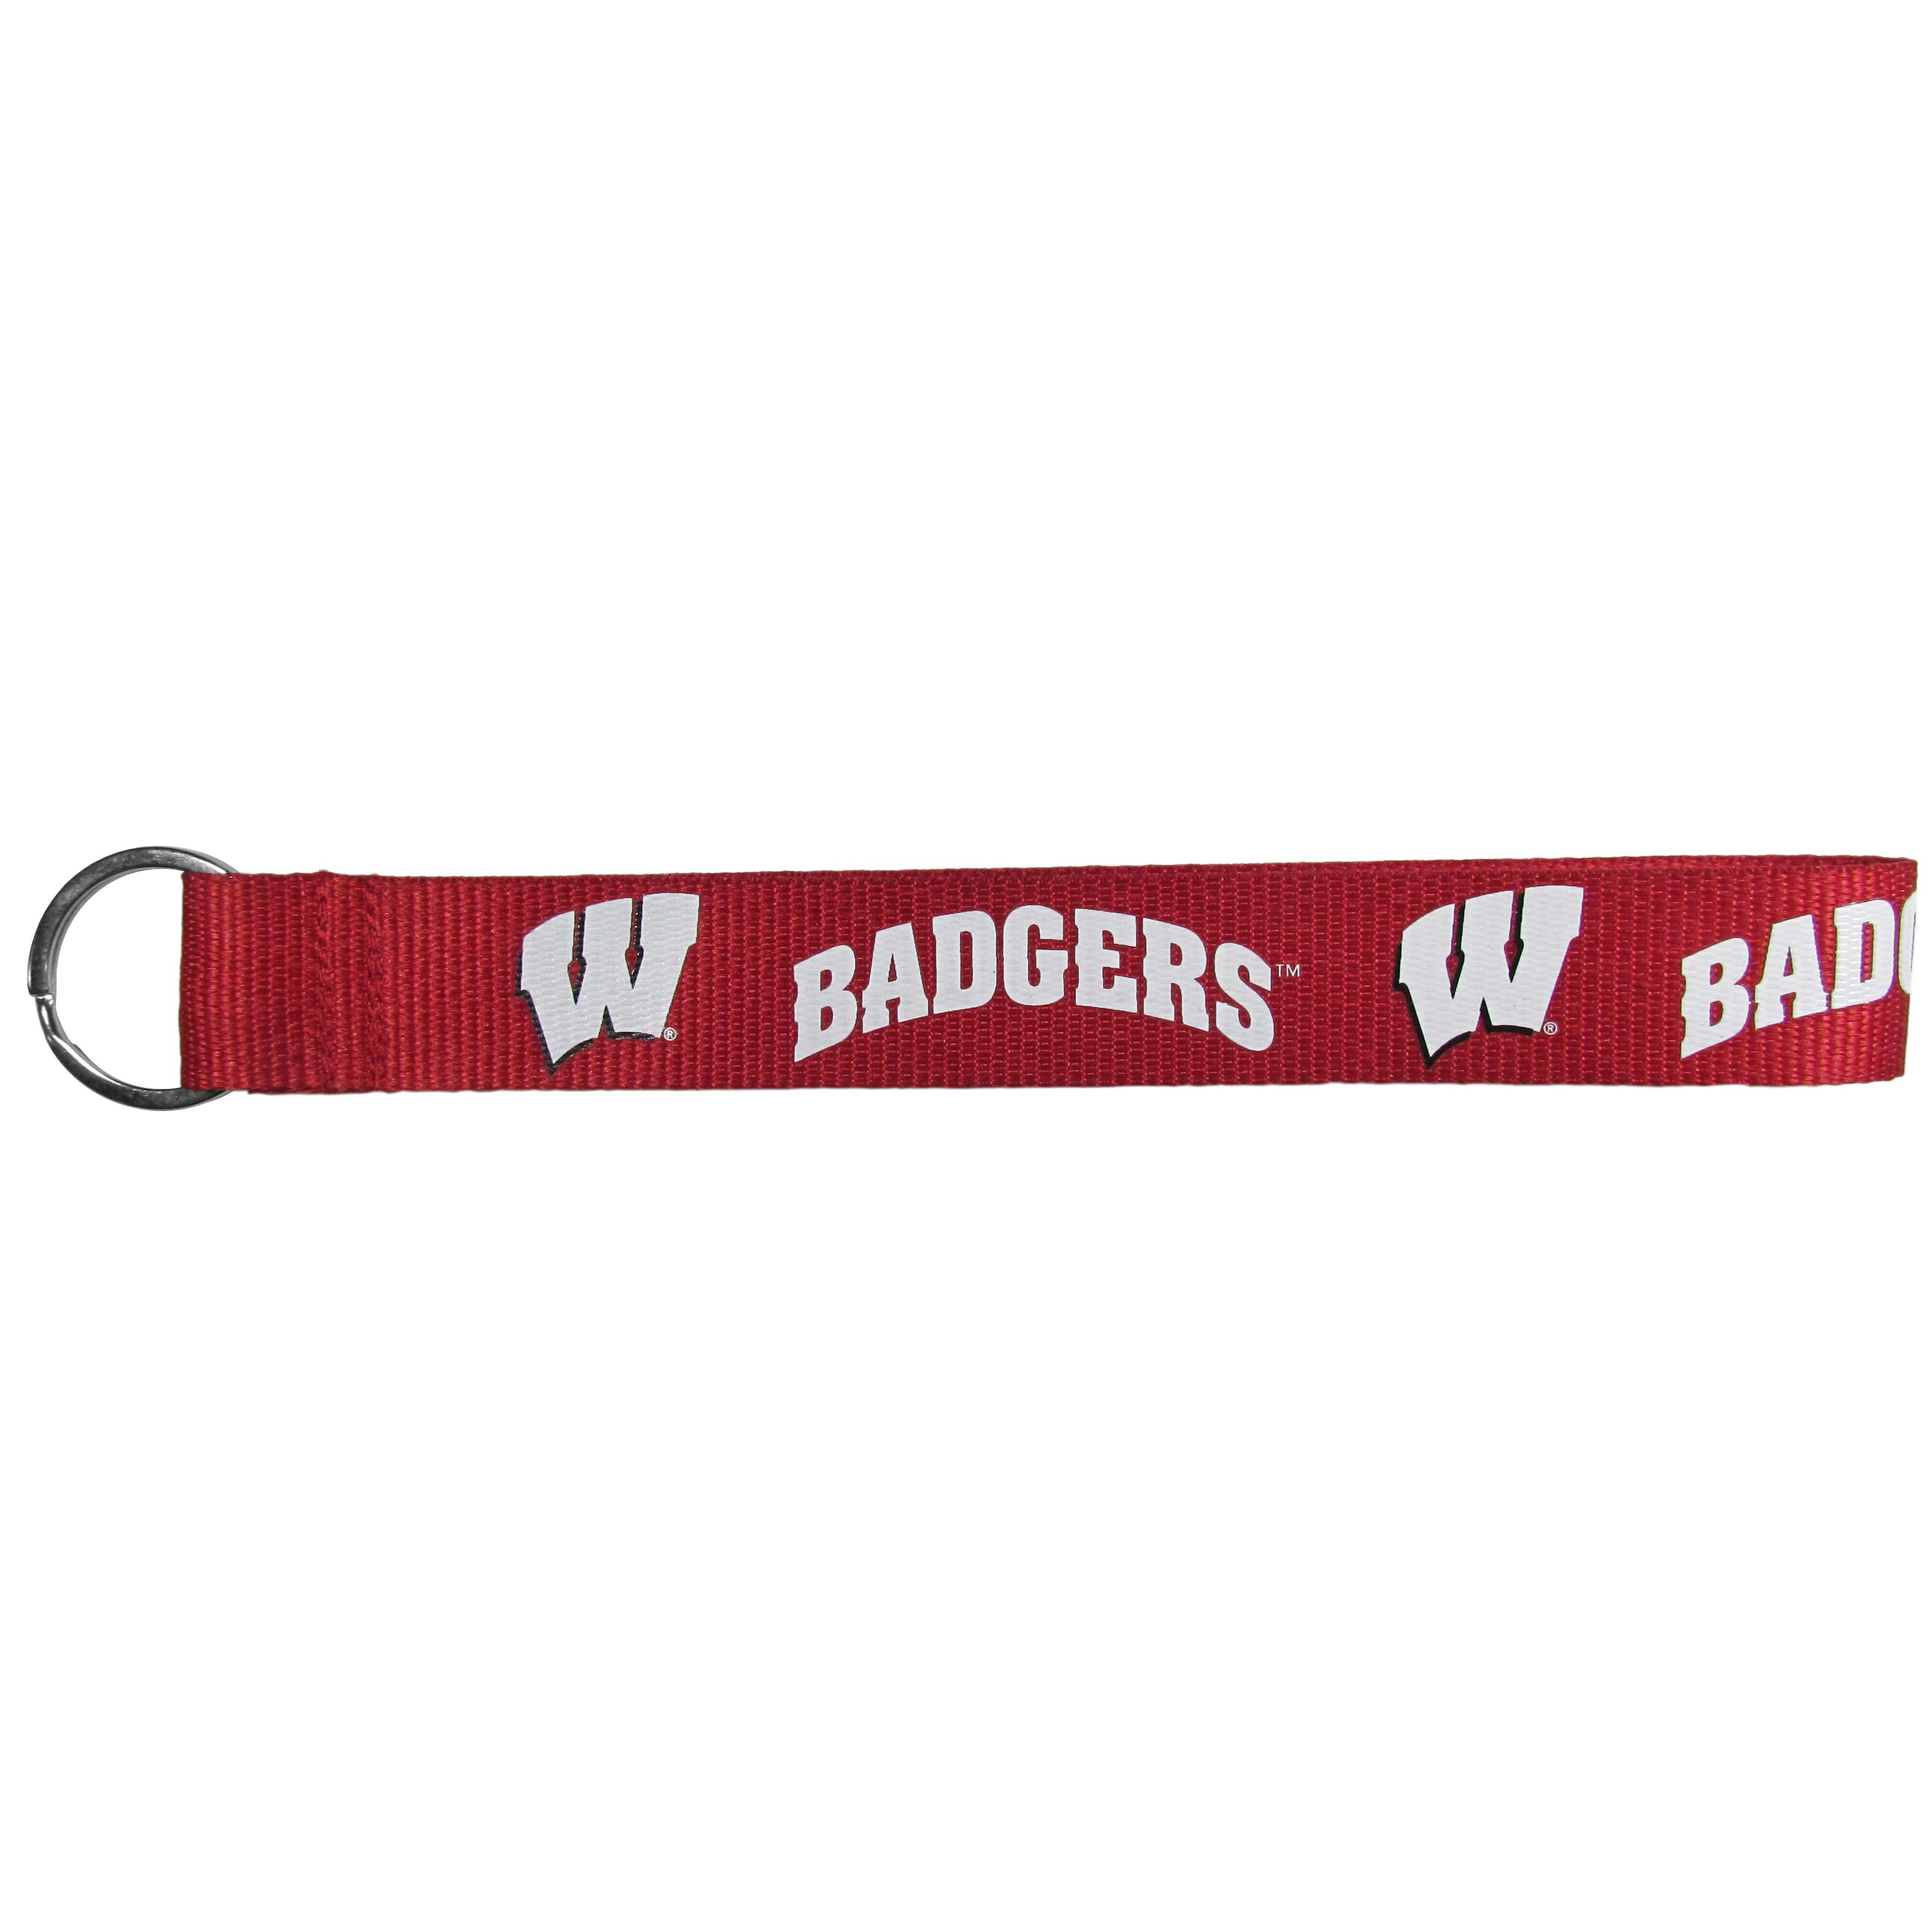 Wisconsin Badgers Lanyard Key Chain - Our wrist strap lanyard key chain is made of durable and comfortable woven material and is a not only a great key chain but an easy way to keep track of your keys. The bright Wisconsin Badgers graffics makes this key chain easy to find in gym bags, purses and in the dreaded couch cushions.